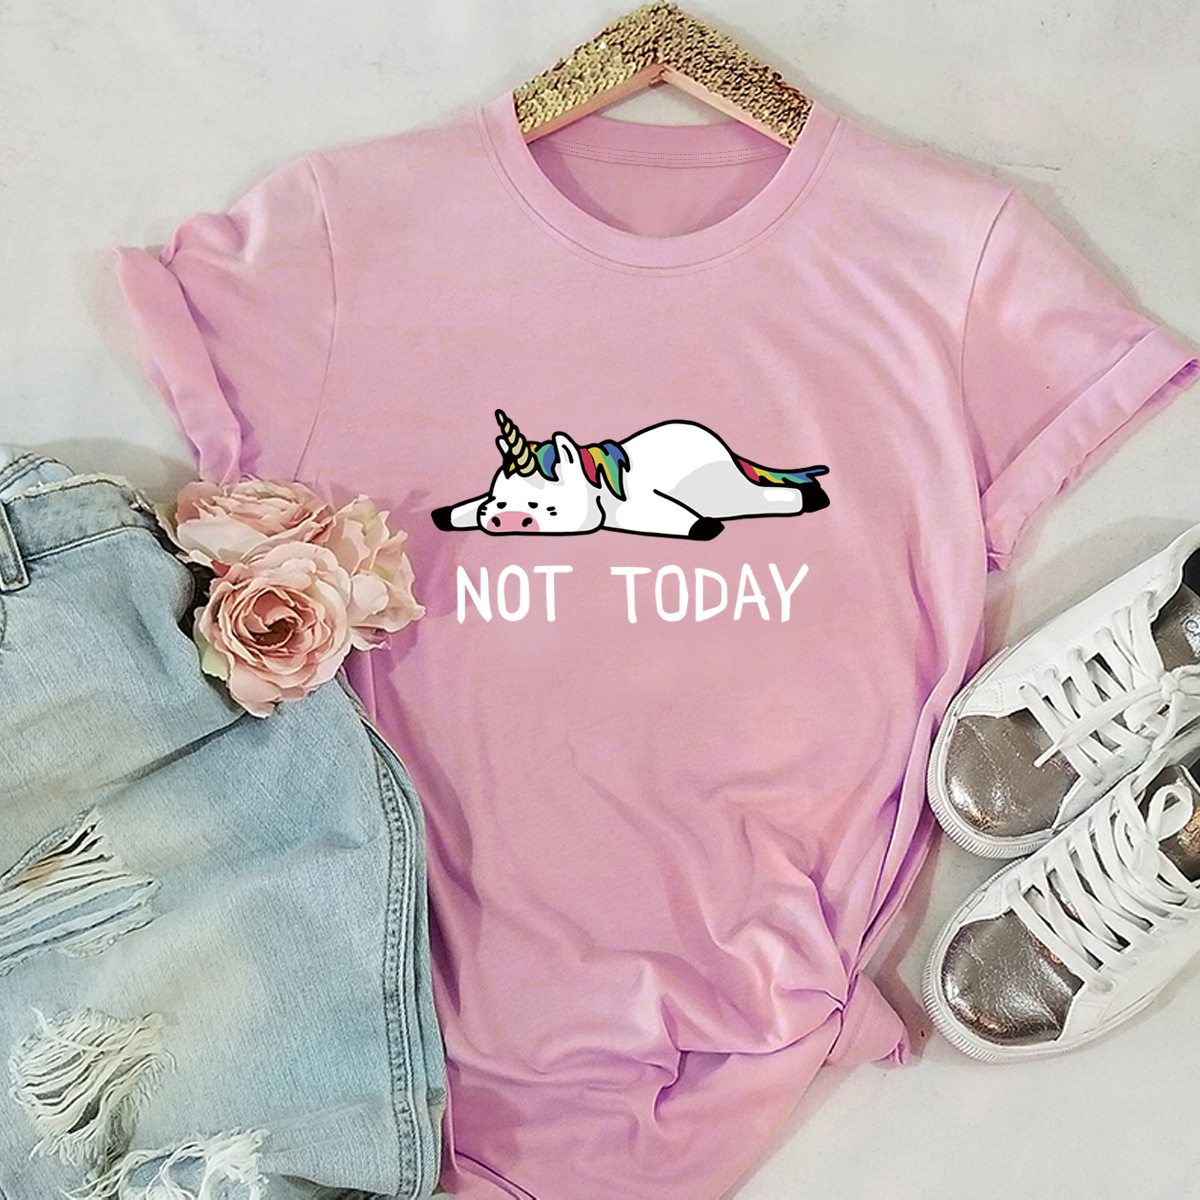 H22a0ccde65824a21a912e86afe3dd502B - NOT TODAY Unicorn Printed 100% Cotton Short-sleeved Women's T-shirt Casual Soft Female T shirt Women Plus Size Top